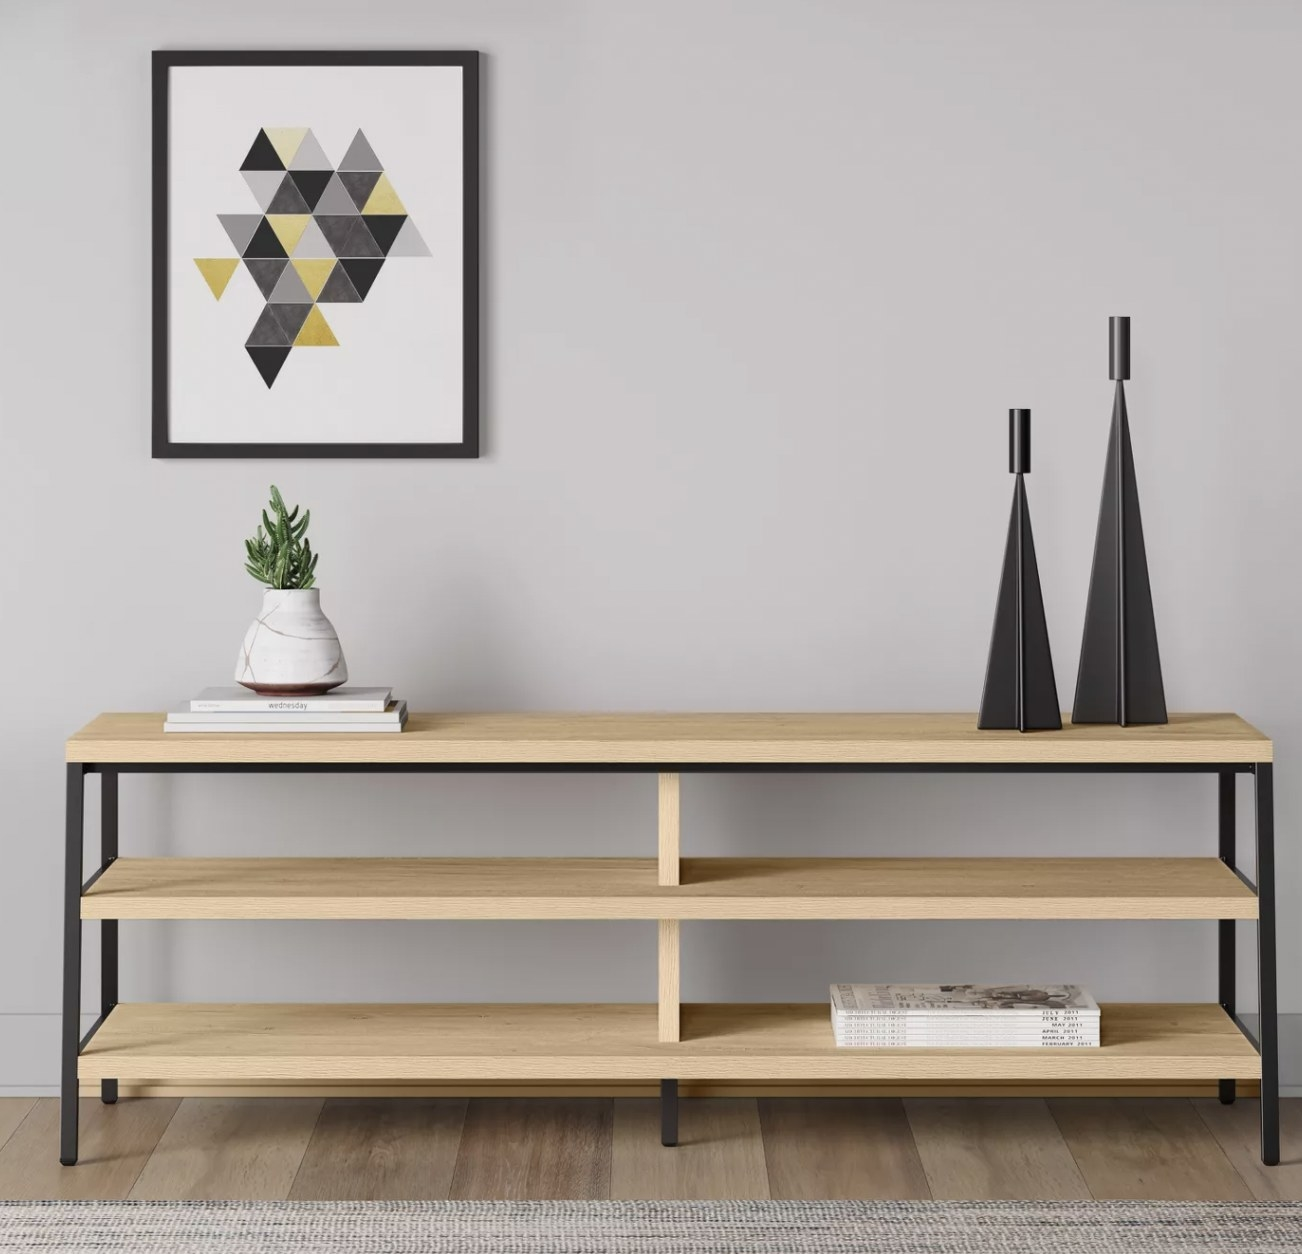 a light wood tv stand with four shelves, and one long shelf on top to hold a TV. This stand has black metal legs